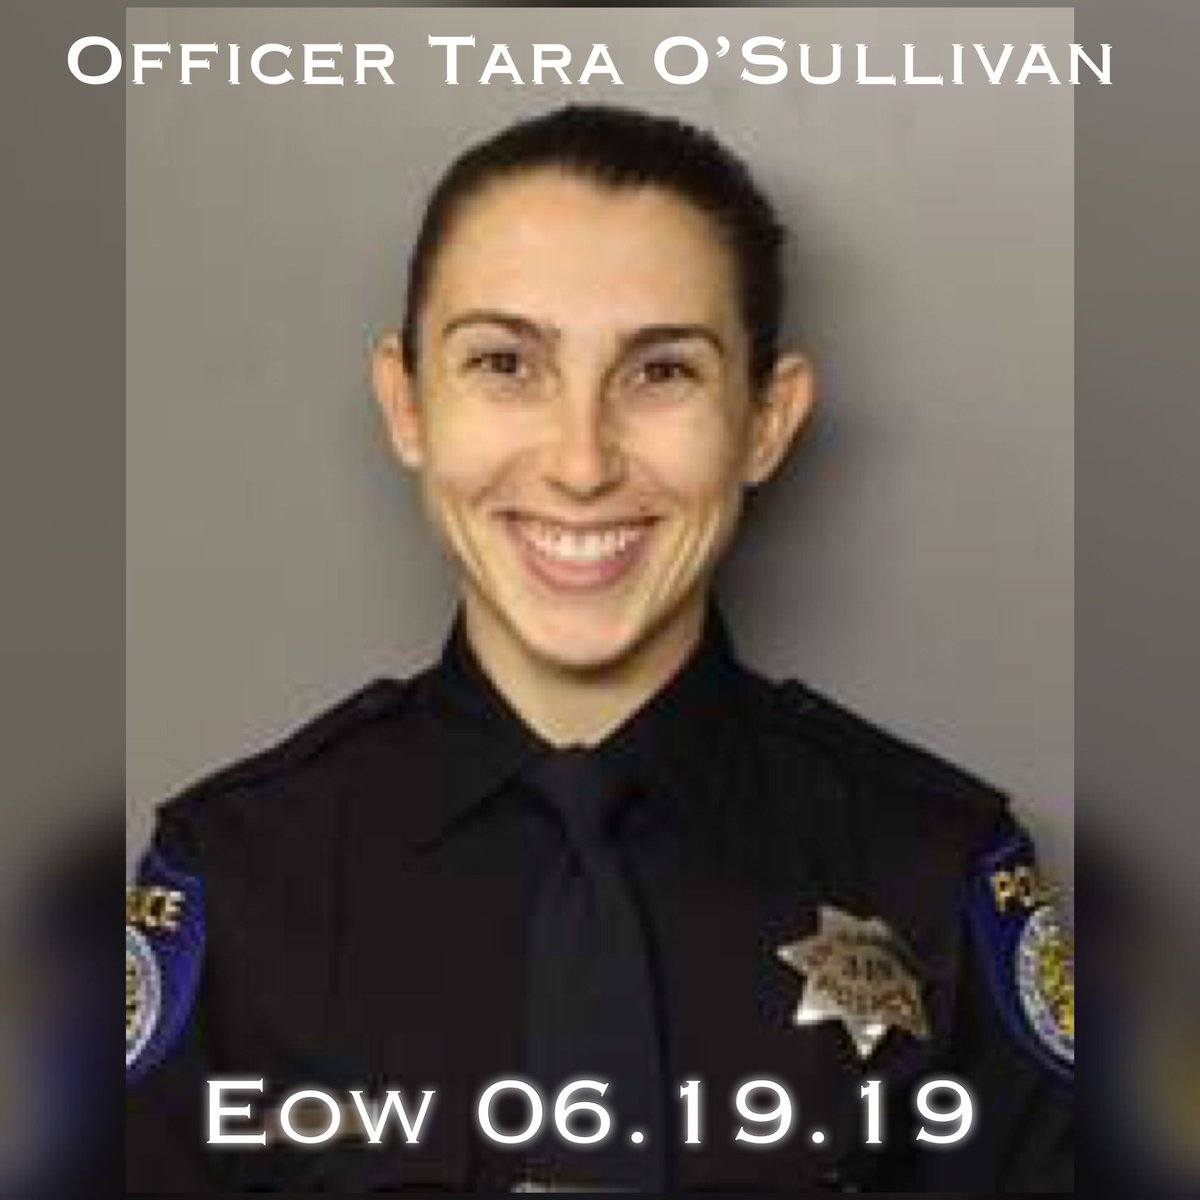 @SacPolice's photo on Officer Tara O'Sullivan